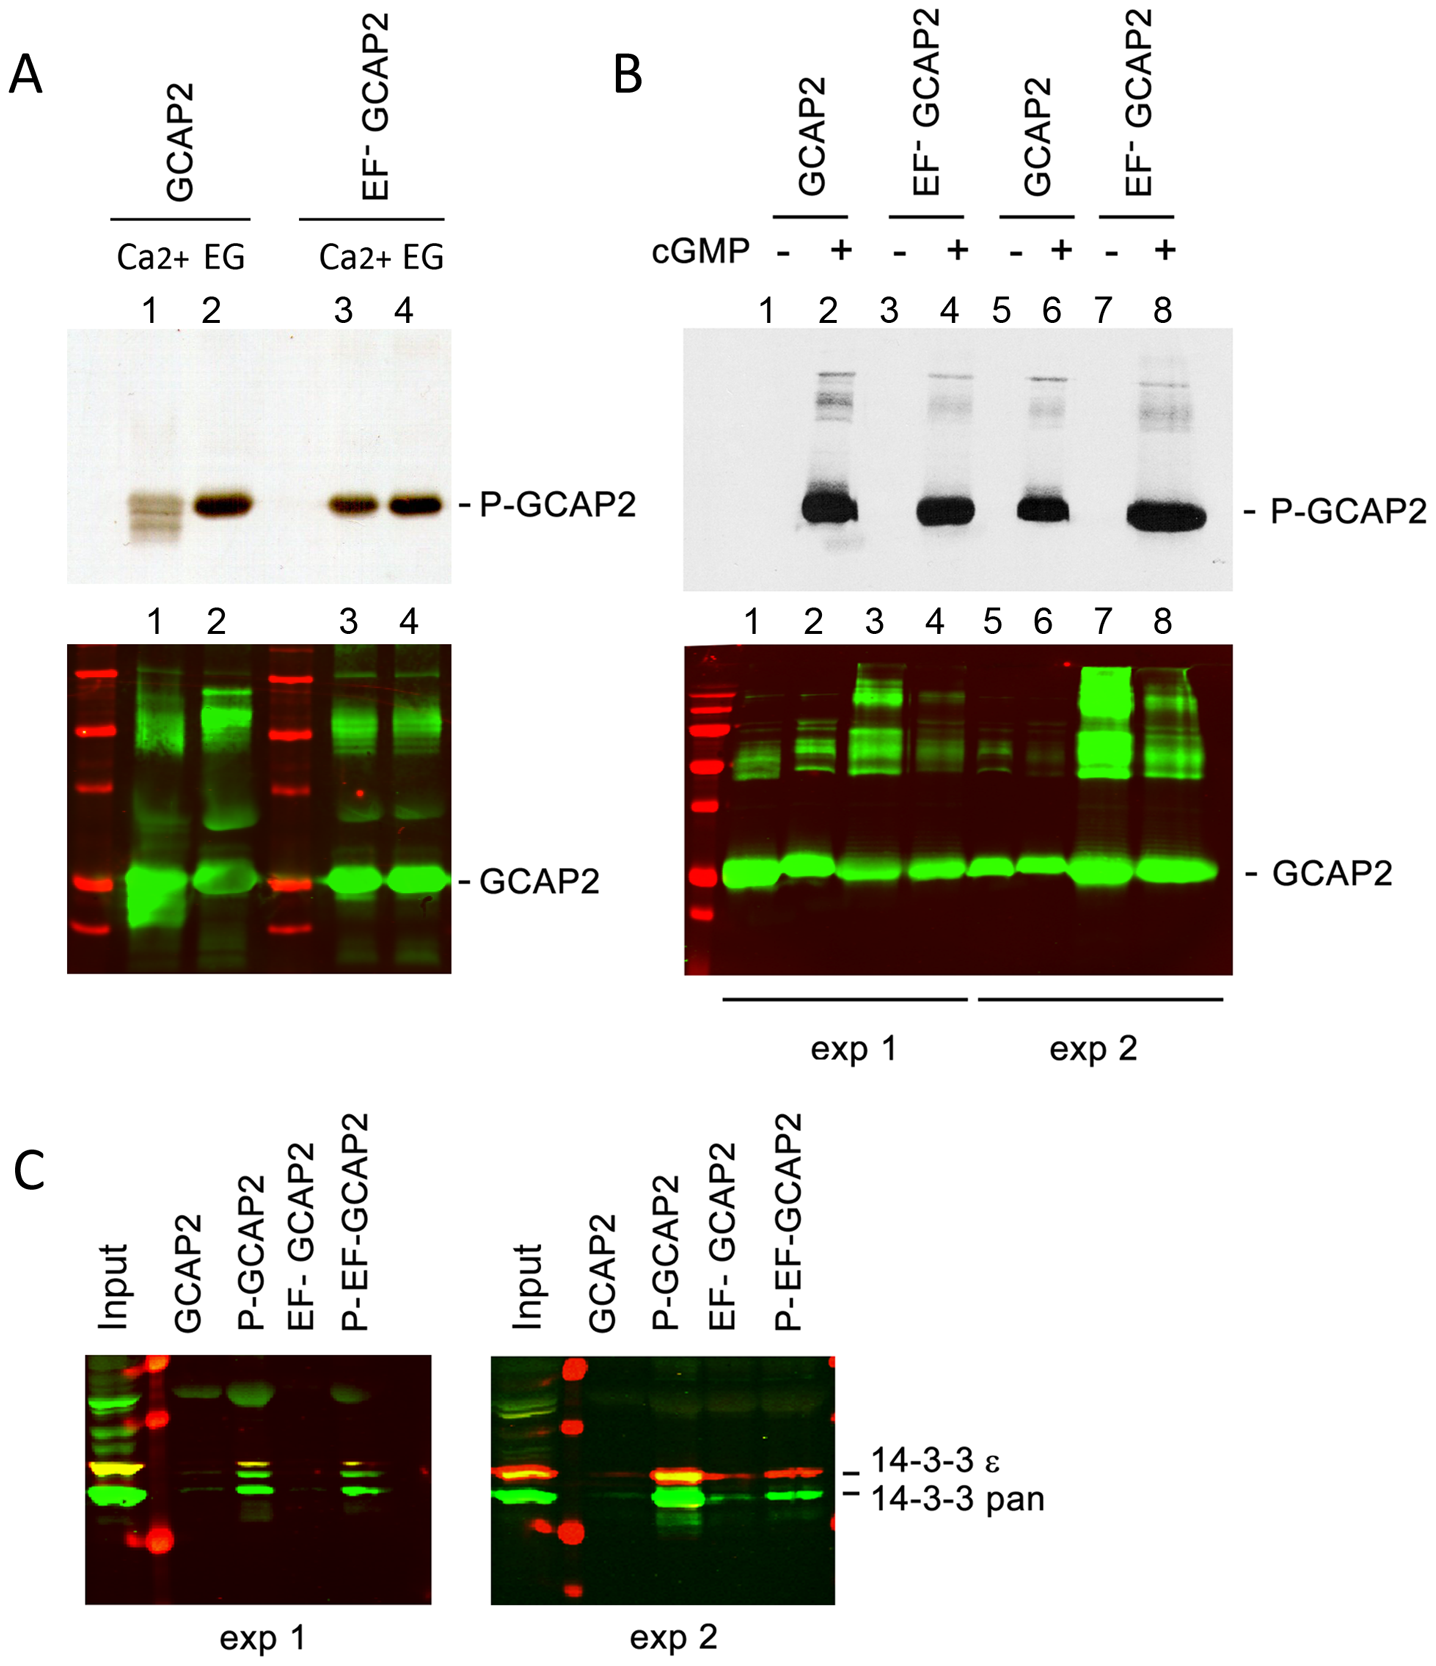 The protein 14-3-3 binds to recombinant GCAP2 in a phosphorylation-dependent manner.